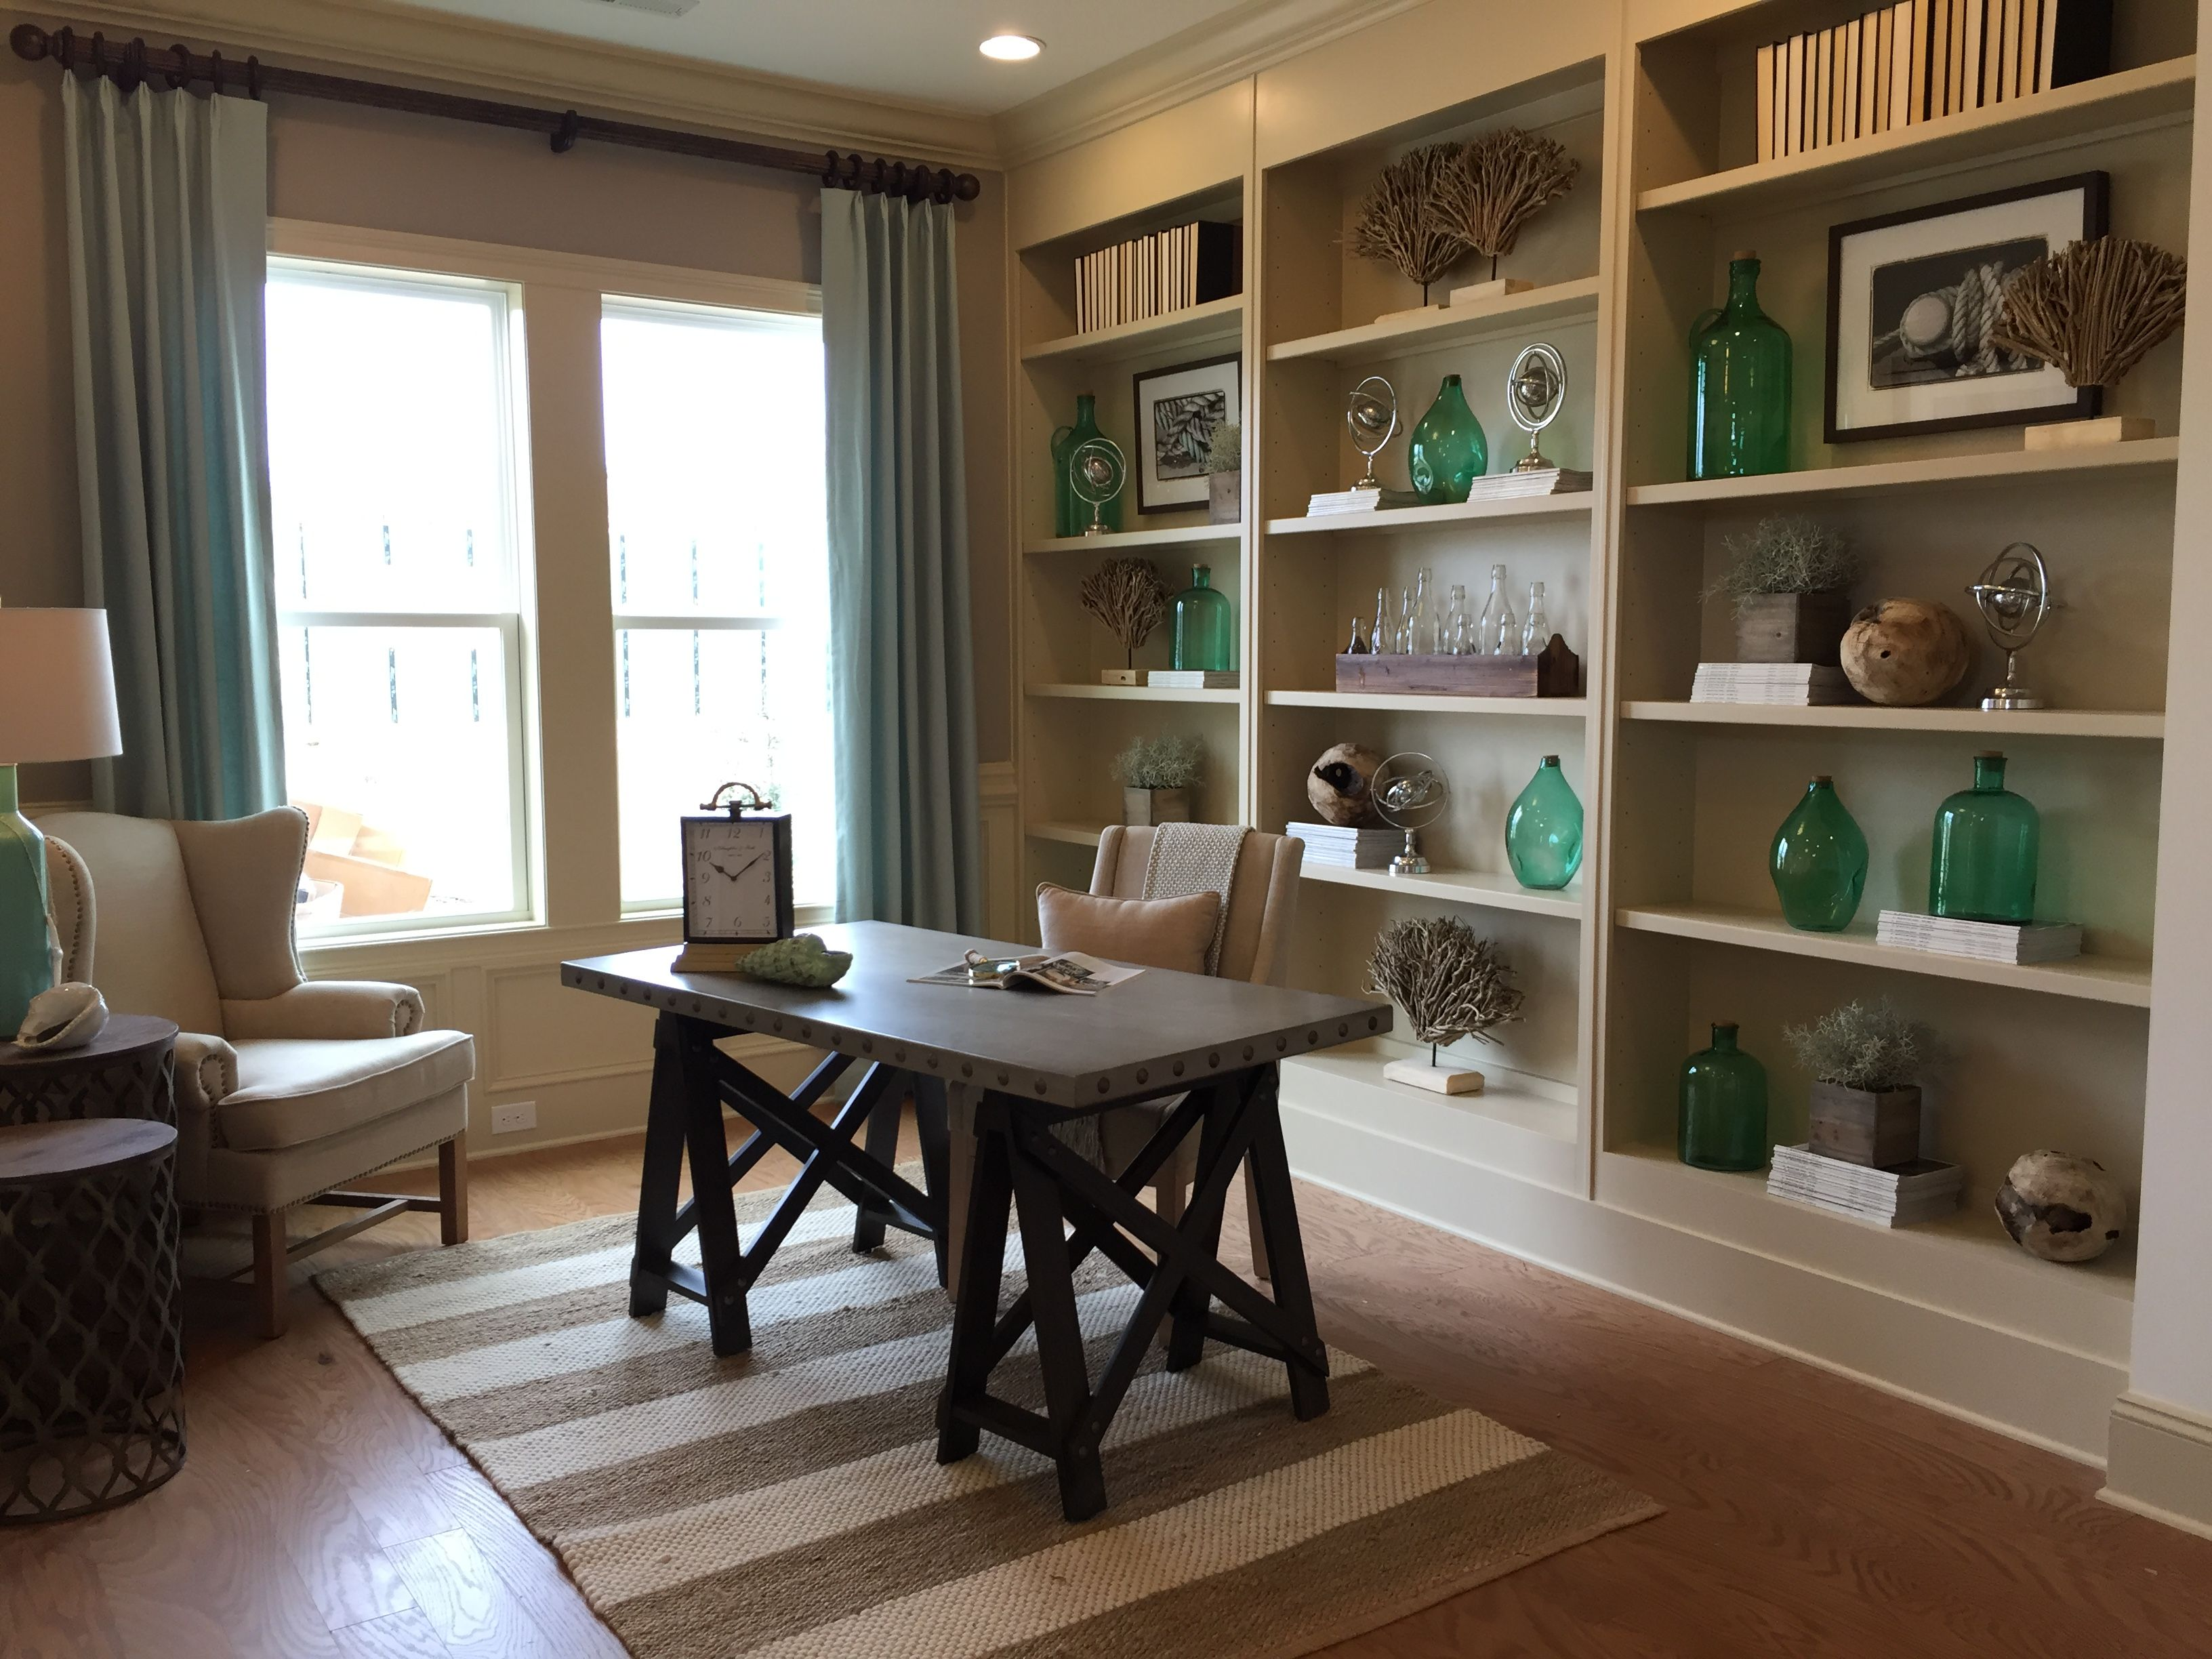 Home   Kathy Andrews Interiors   Interior Design Firm